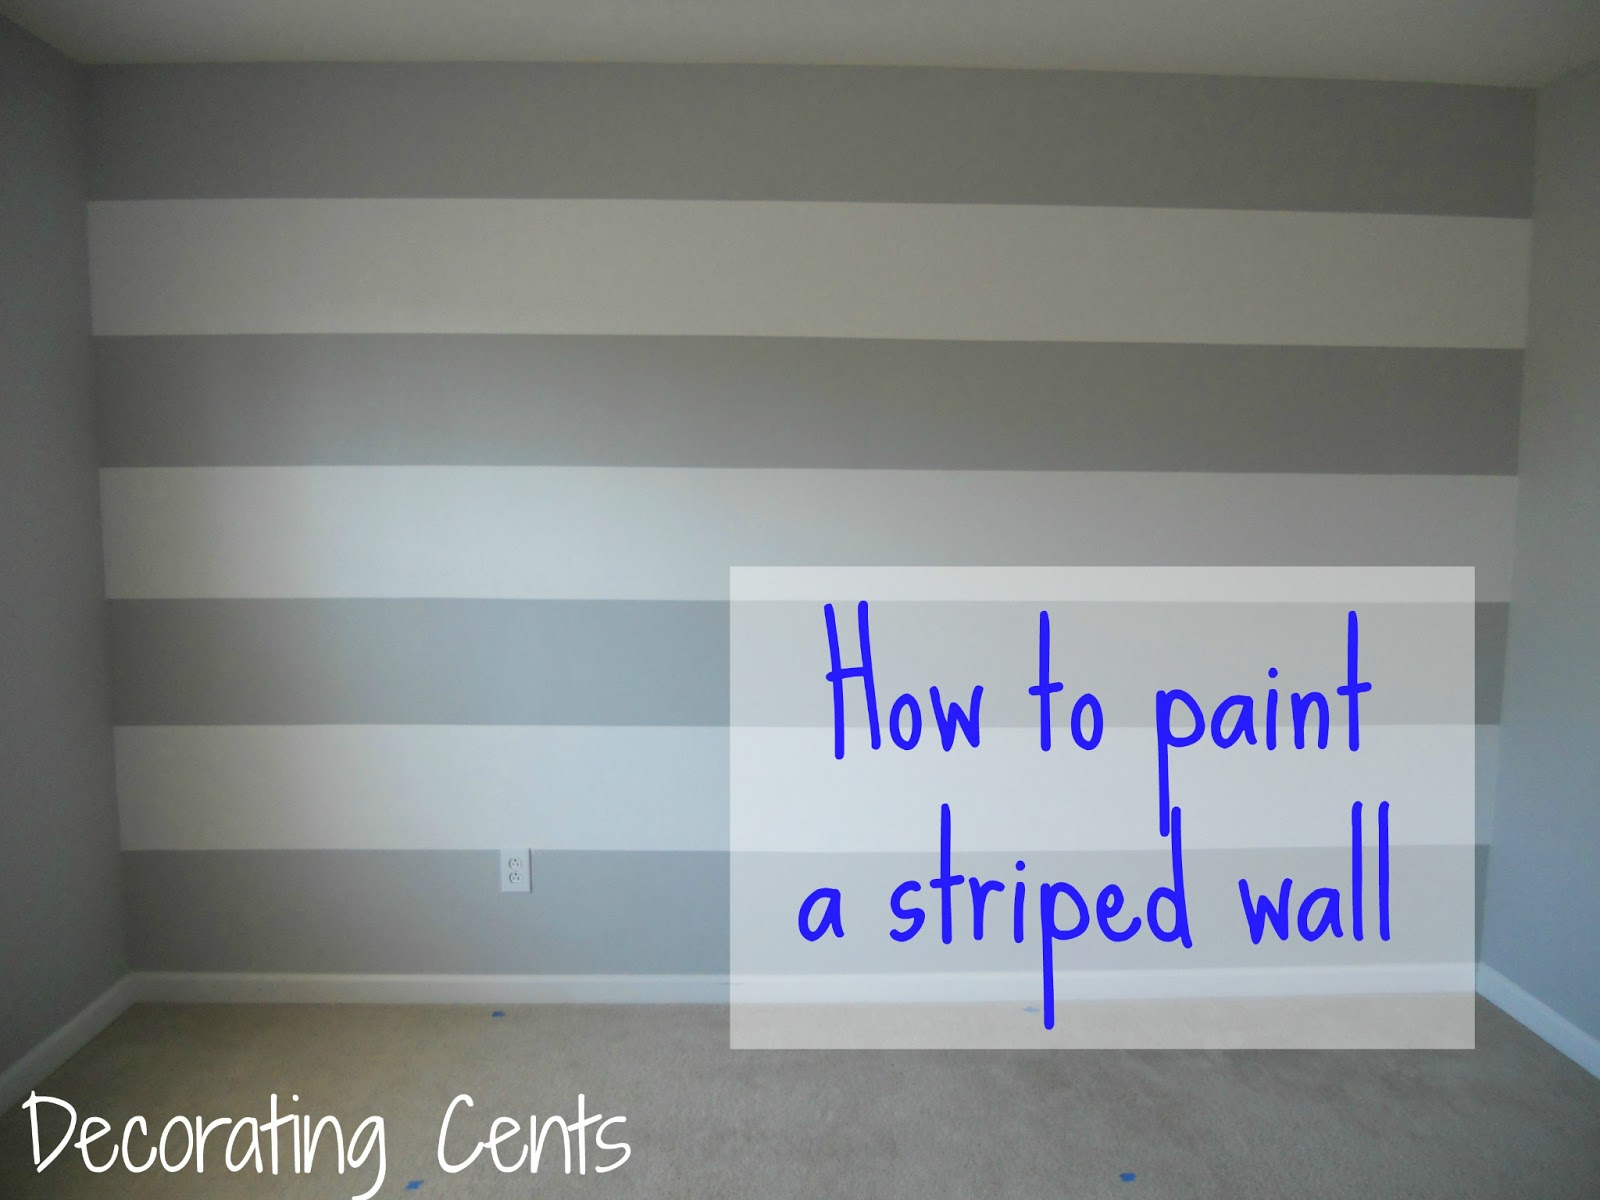 Decorating cents painting a striped wall - How we paint your room ...